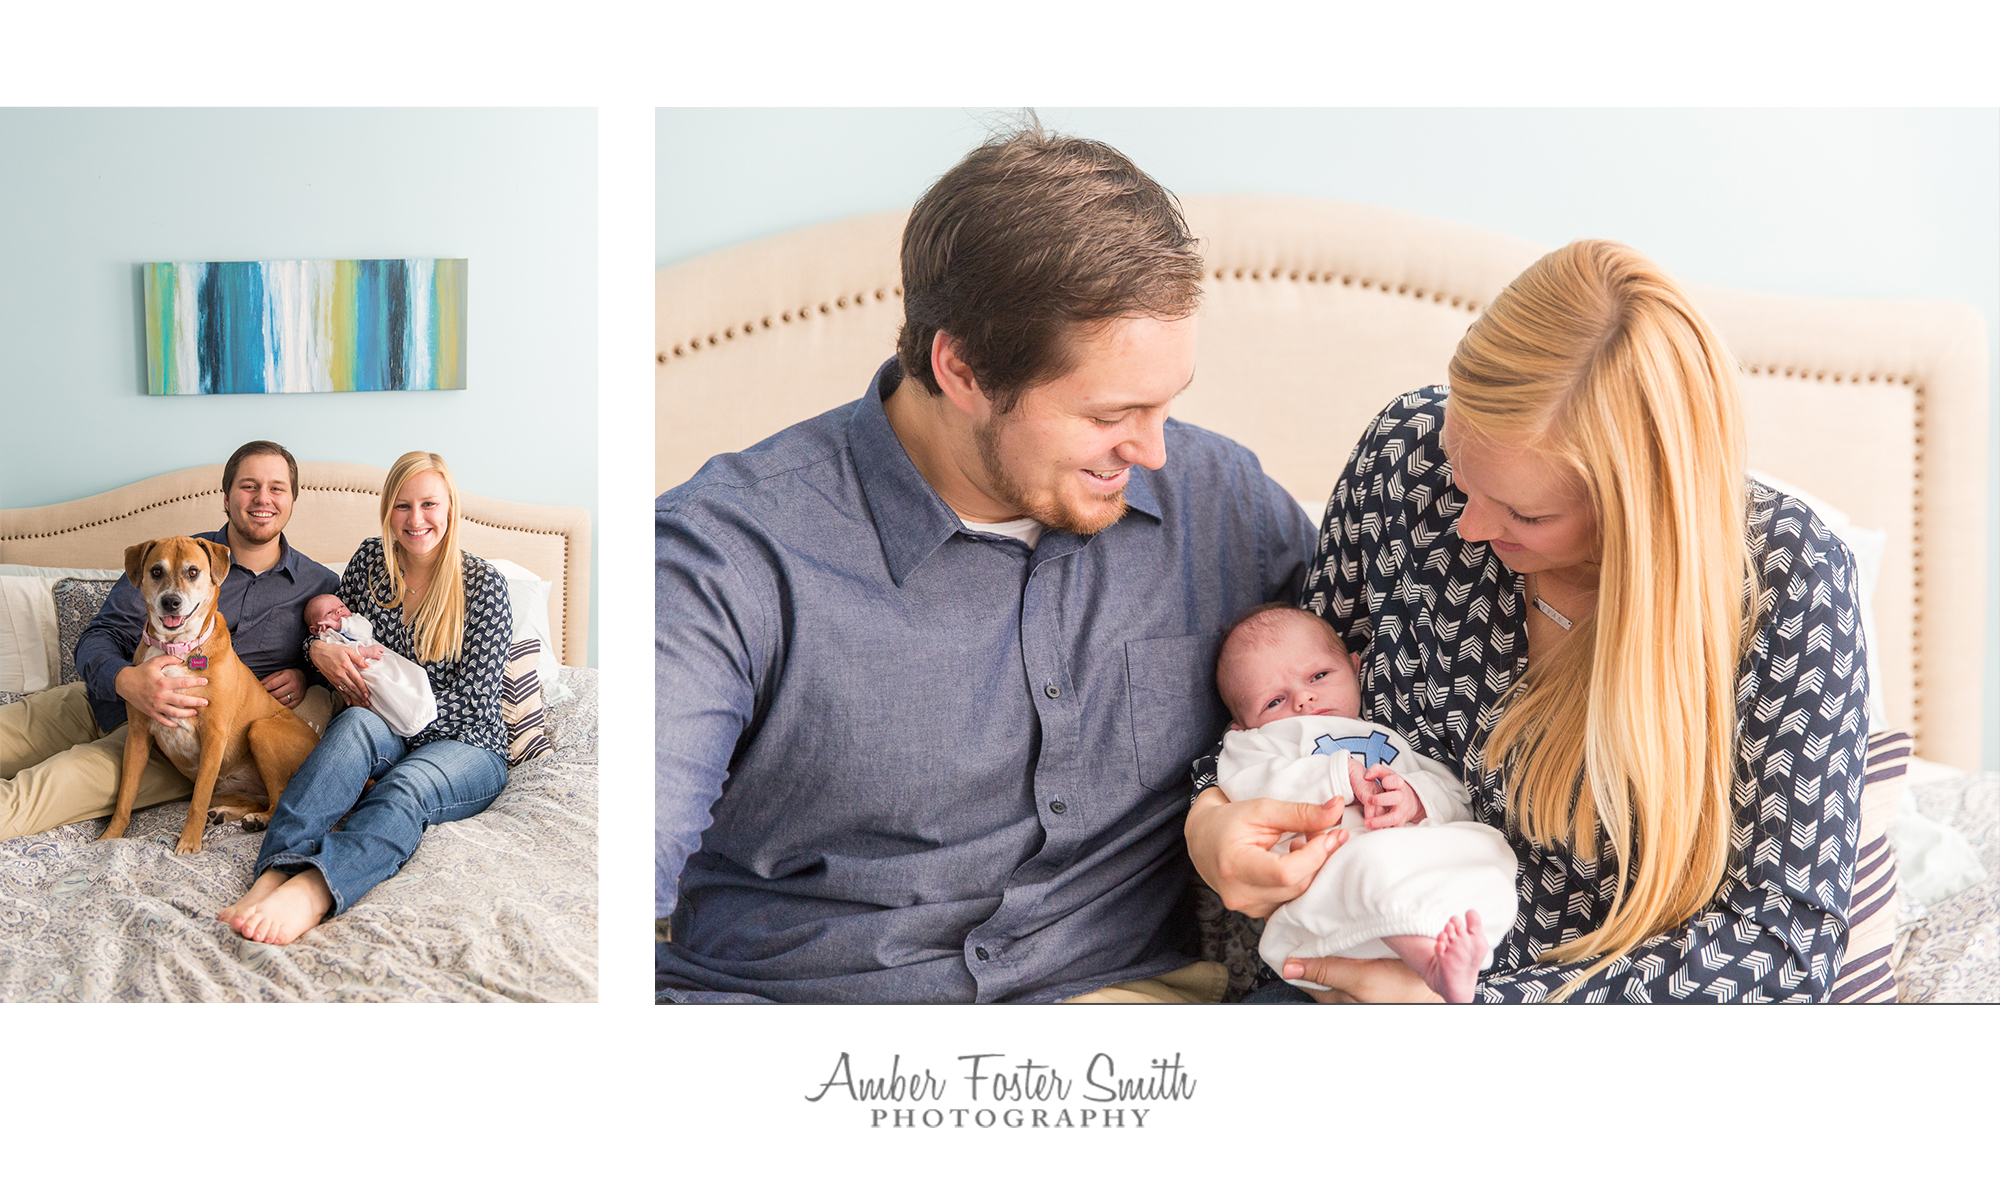 Amber Foster Smith Photography - Newborn Photography in Holly Springs